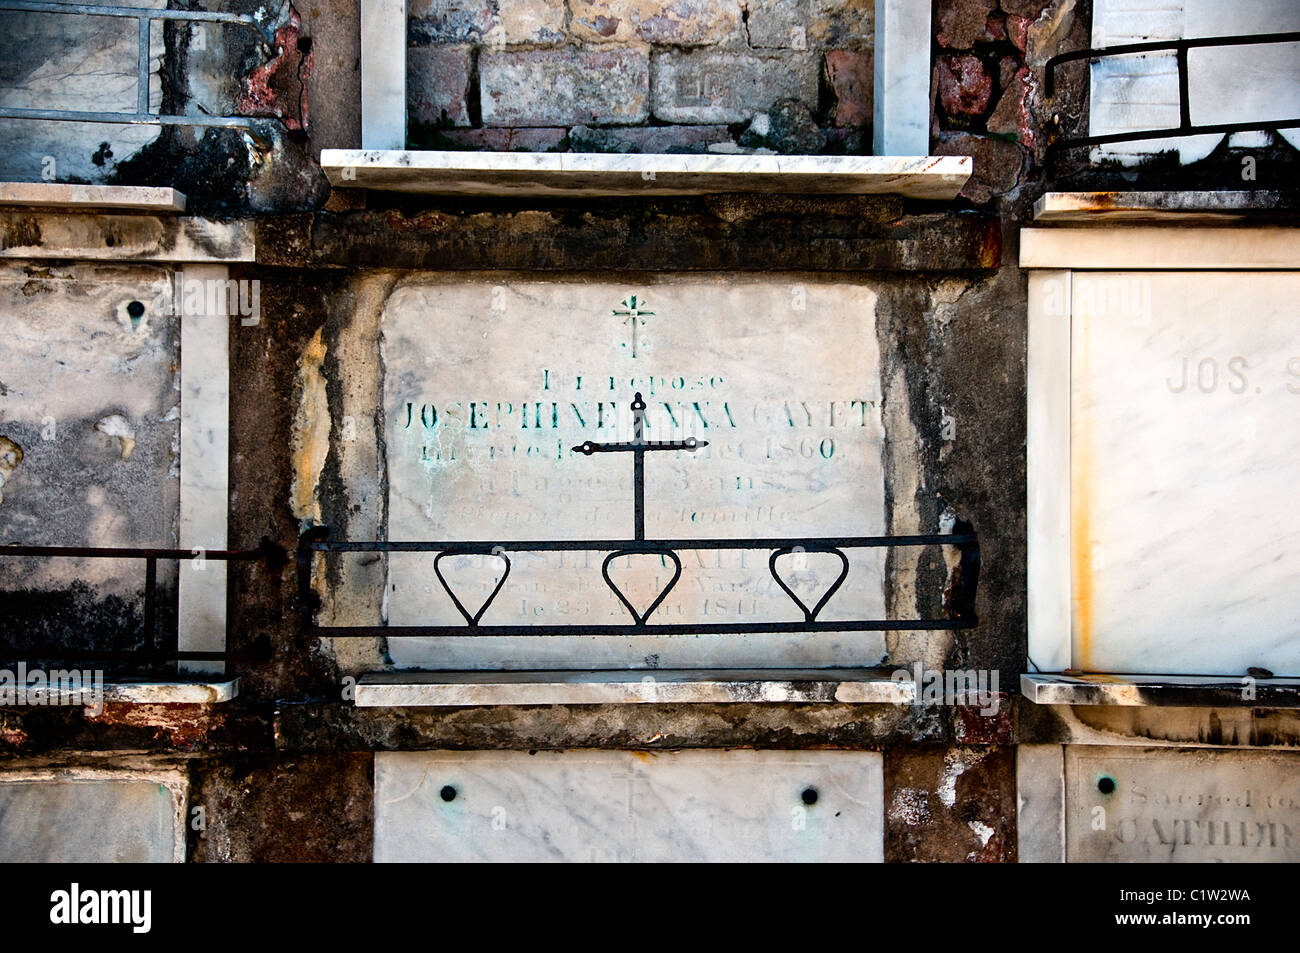 Ruins of a cemetery, St. Vincent De Paul Cemetery, New Orleans, Louisiana, USA Stock Photo